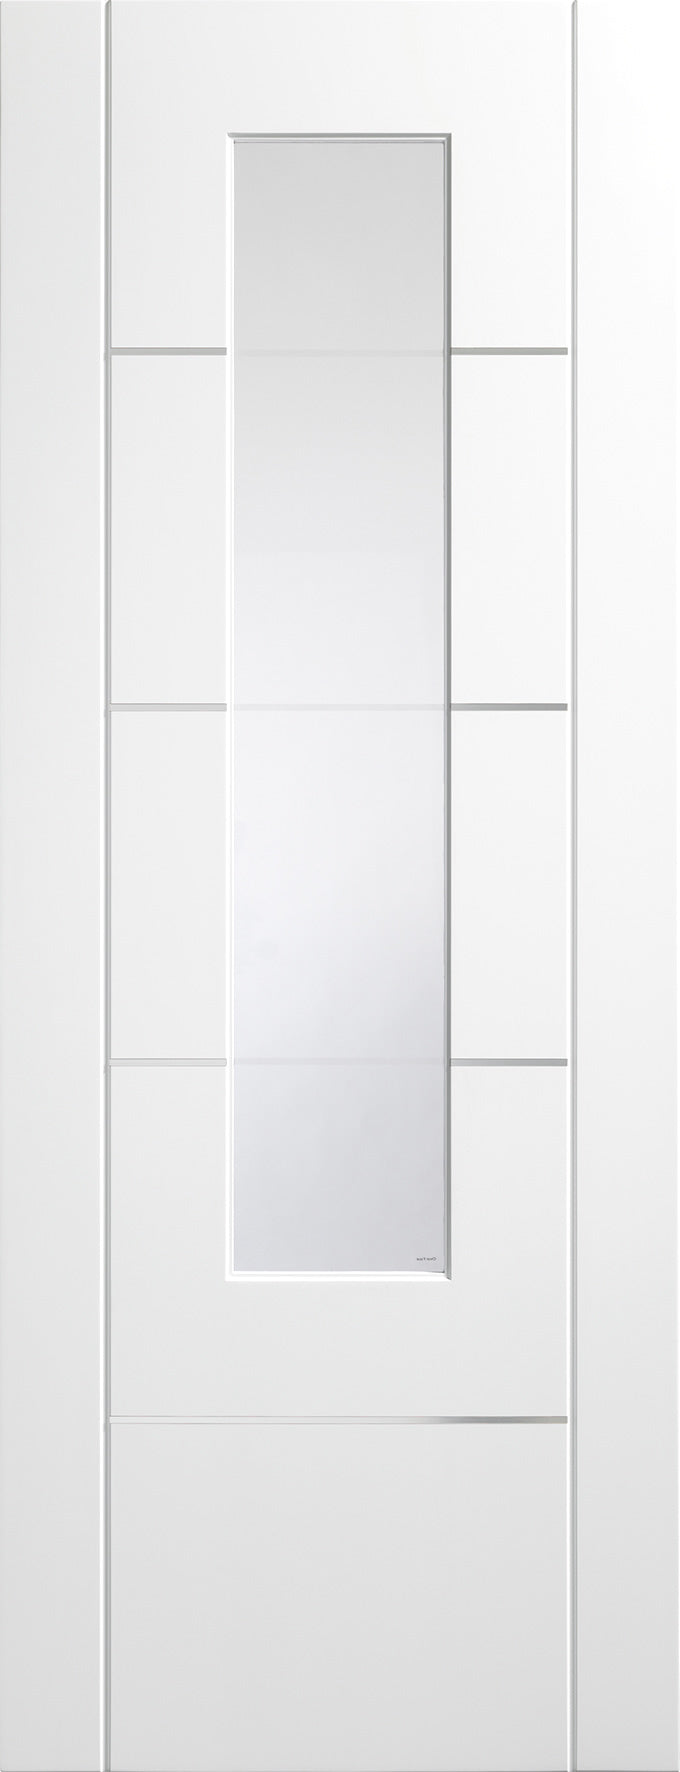 Portici prefinished white Internal door with clear etched glass.